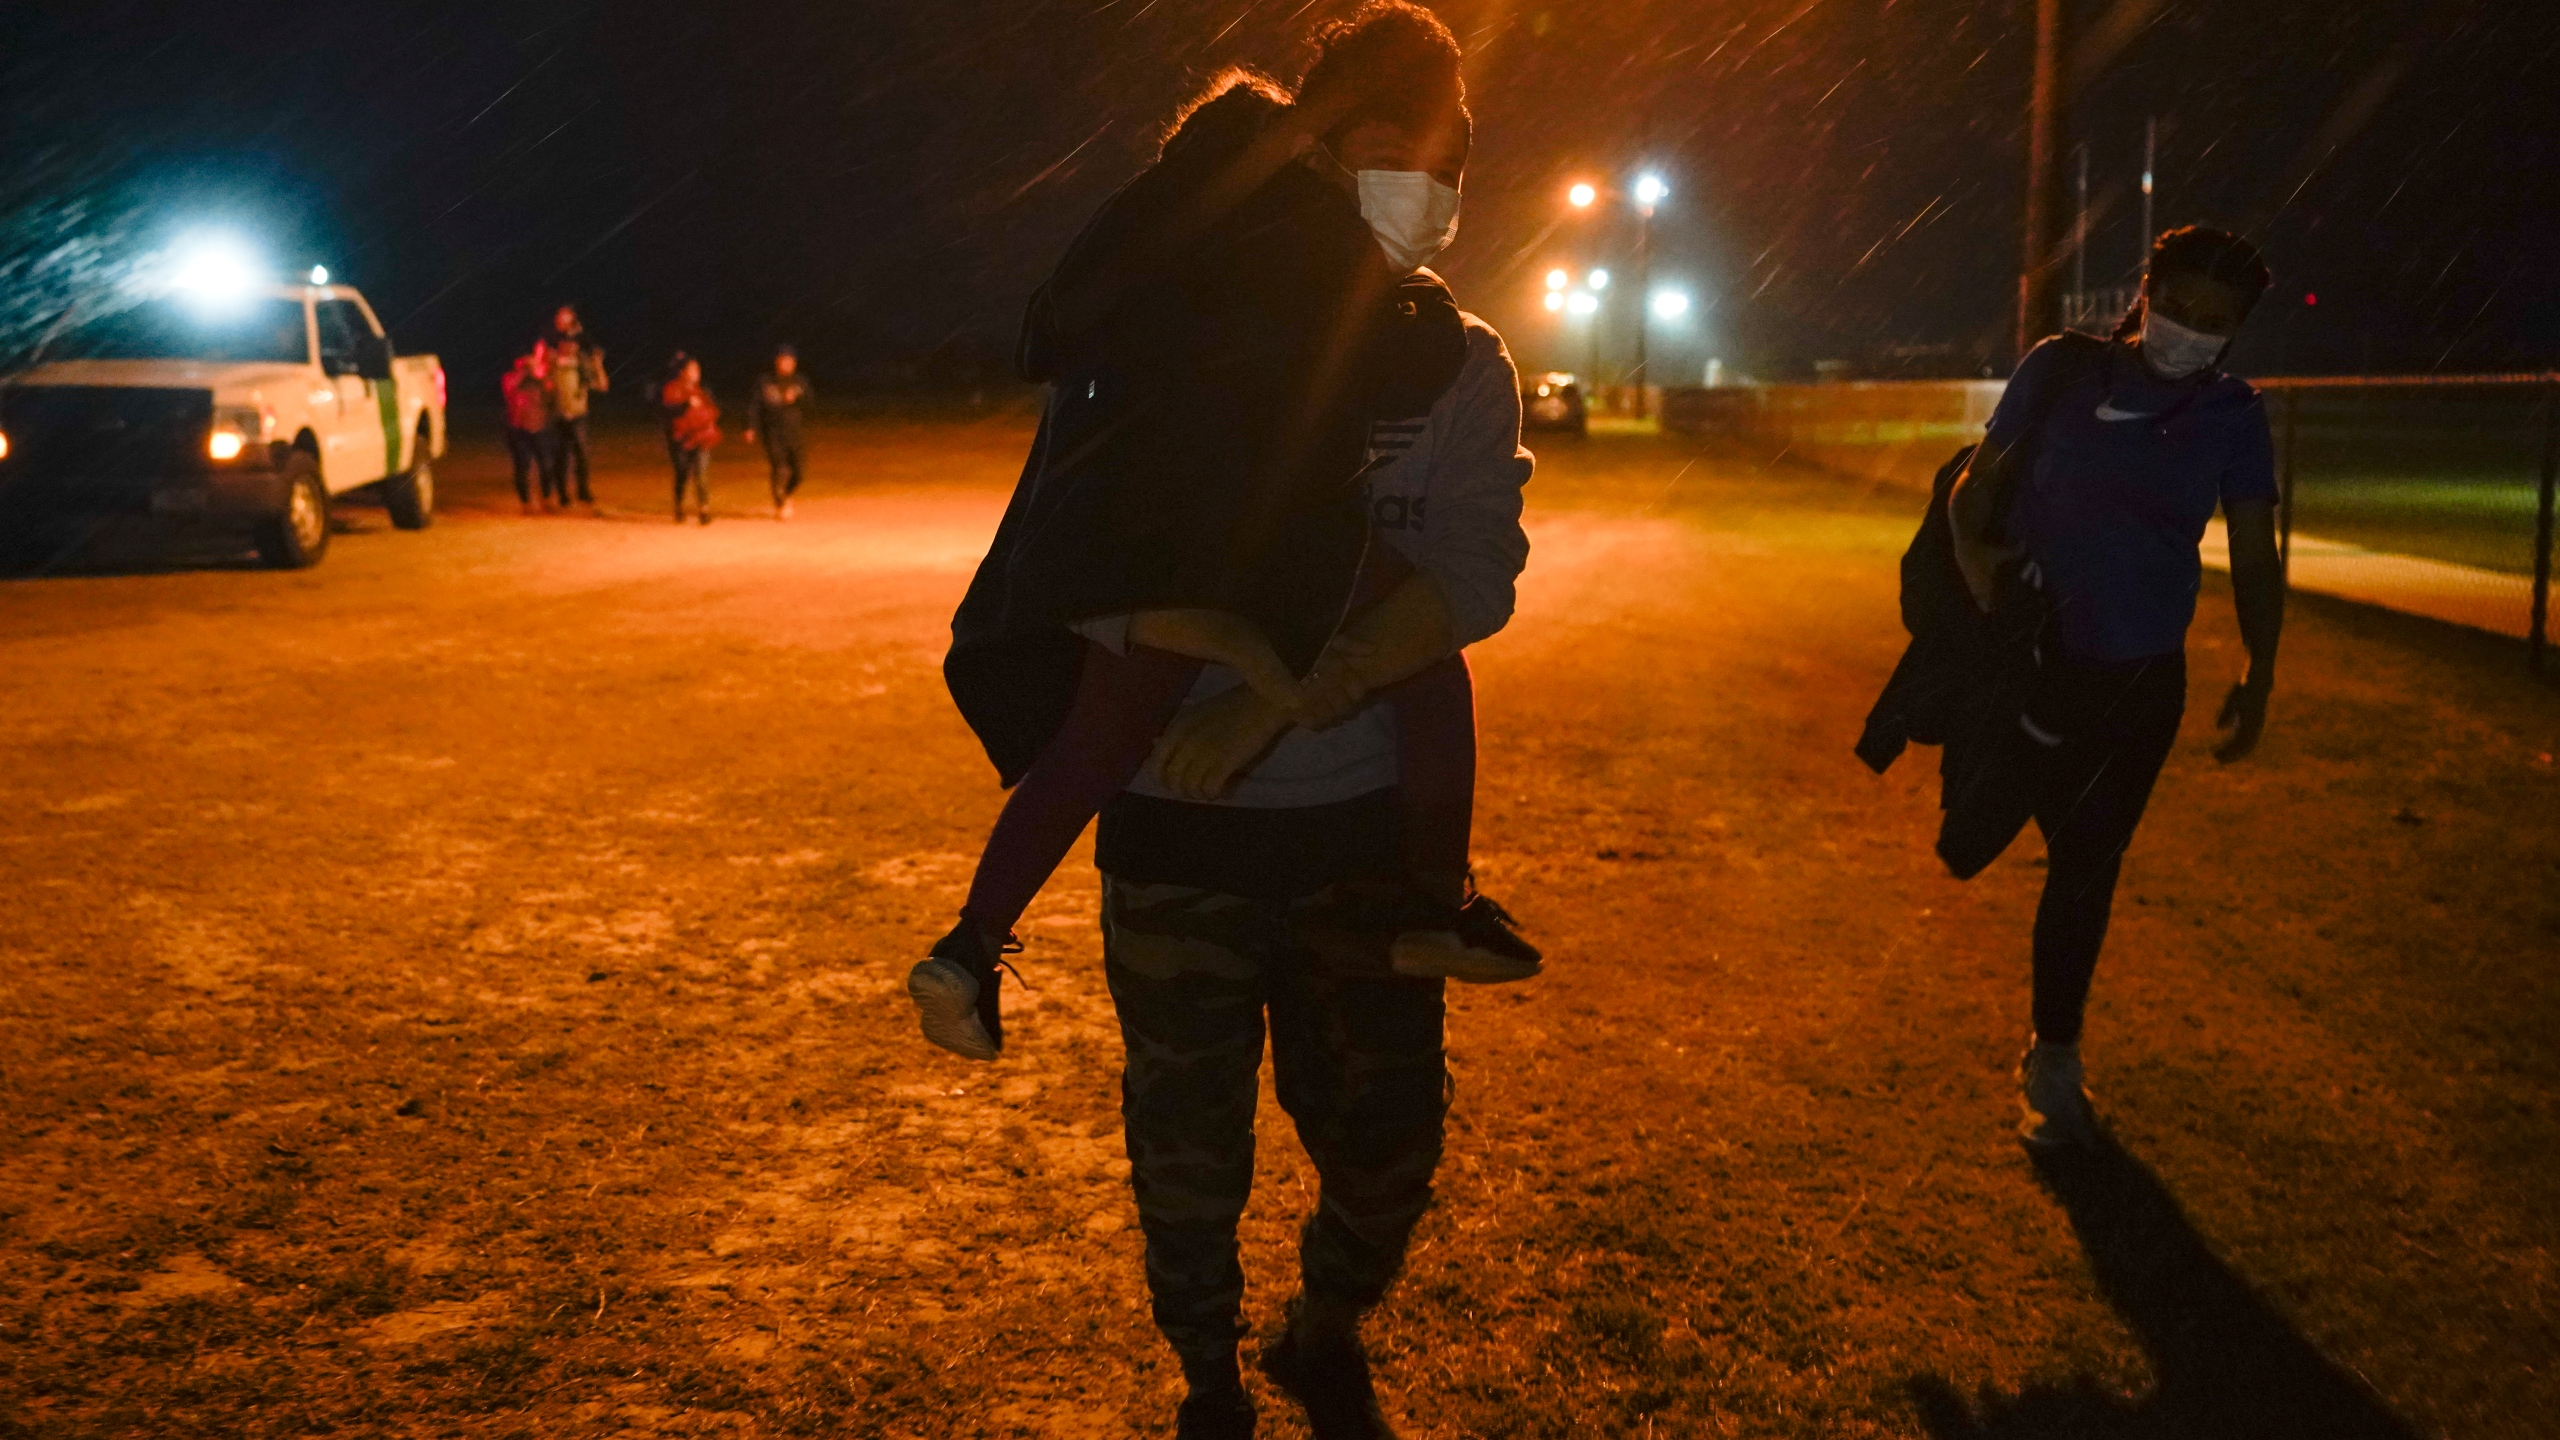 A migrant carries a child at an intake area after turning themselves in upon crossing the U.S.-Mexico border, late Tuesday, May 11, 2021, in La Joya, Texas. The U.S. government continues to report large numbers of migrants crossing the U.S.-Mexico border with an increase in adult crossers. But families and unaccompanied children are still arriving in dramatic numbers despite the weather changing in the Rio Grande Valley registering hotter days and nights. (AP Photo/Gregory Bull)